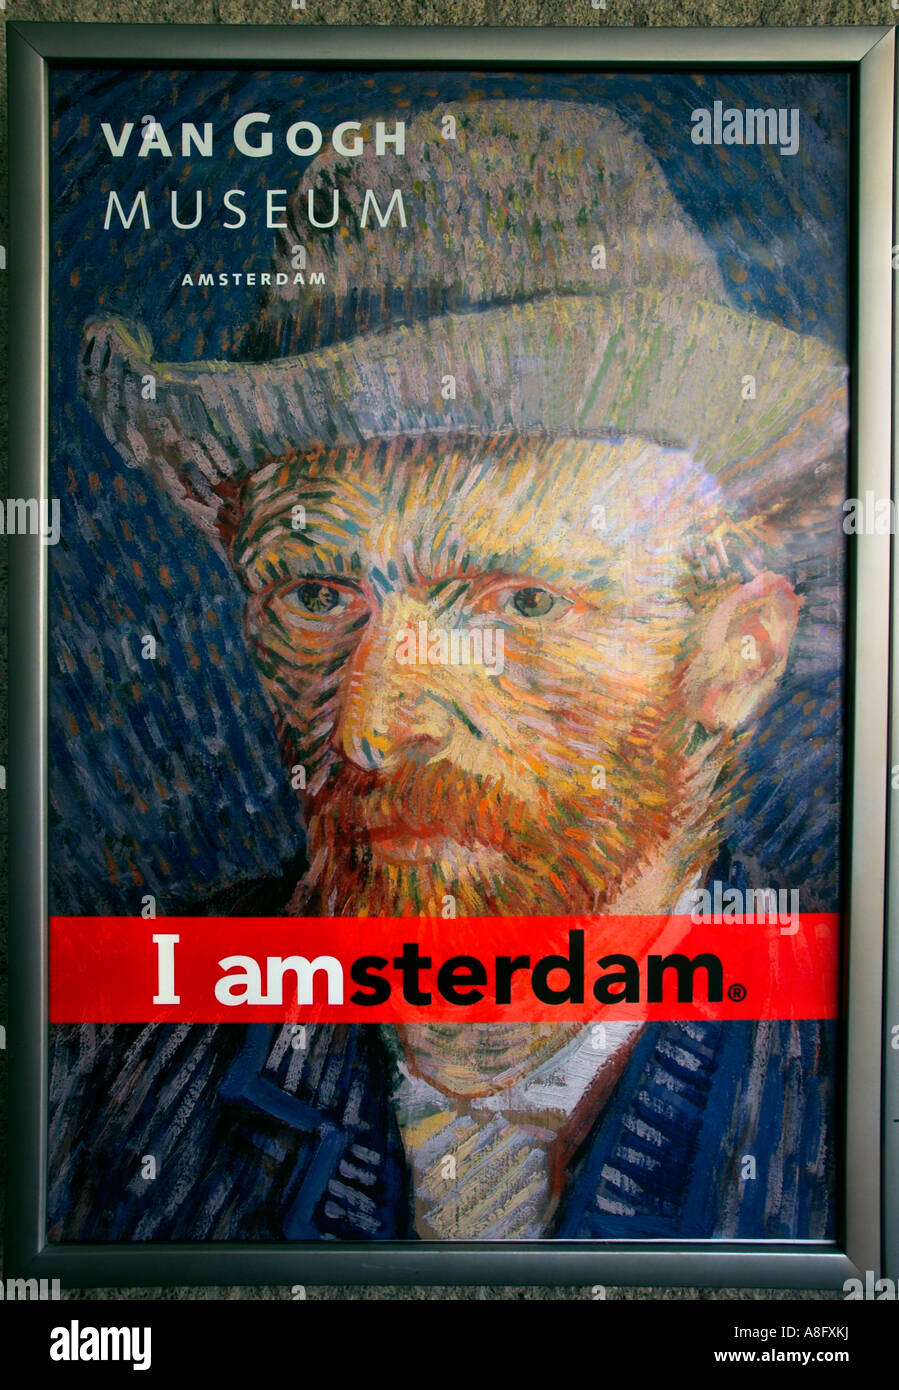 A poster with a portrait of Van Gogh advertising the Van Gogh museum ...